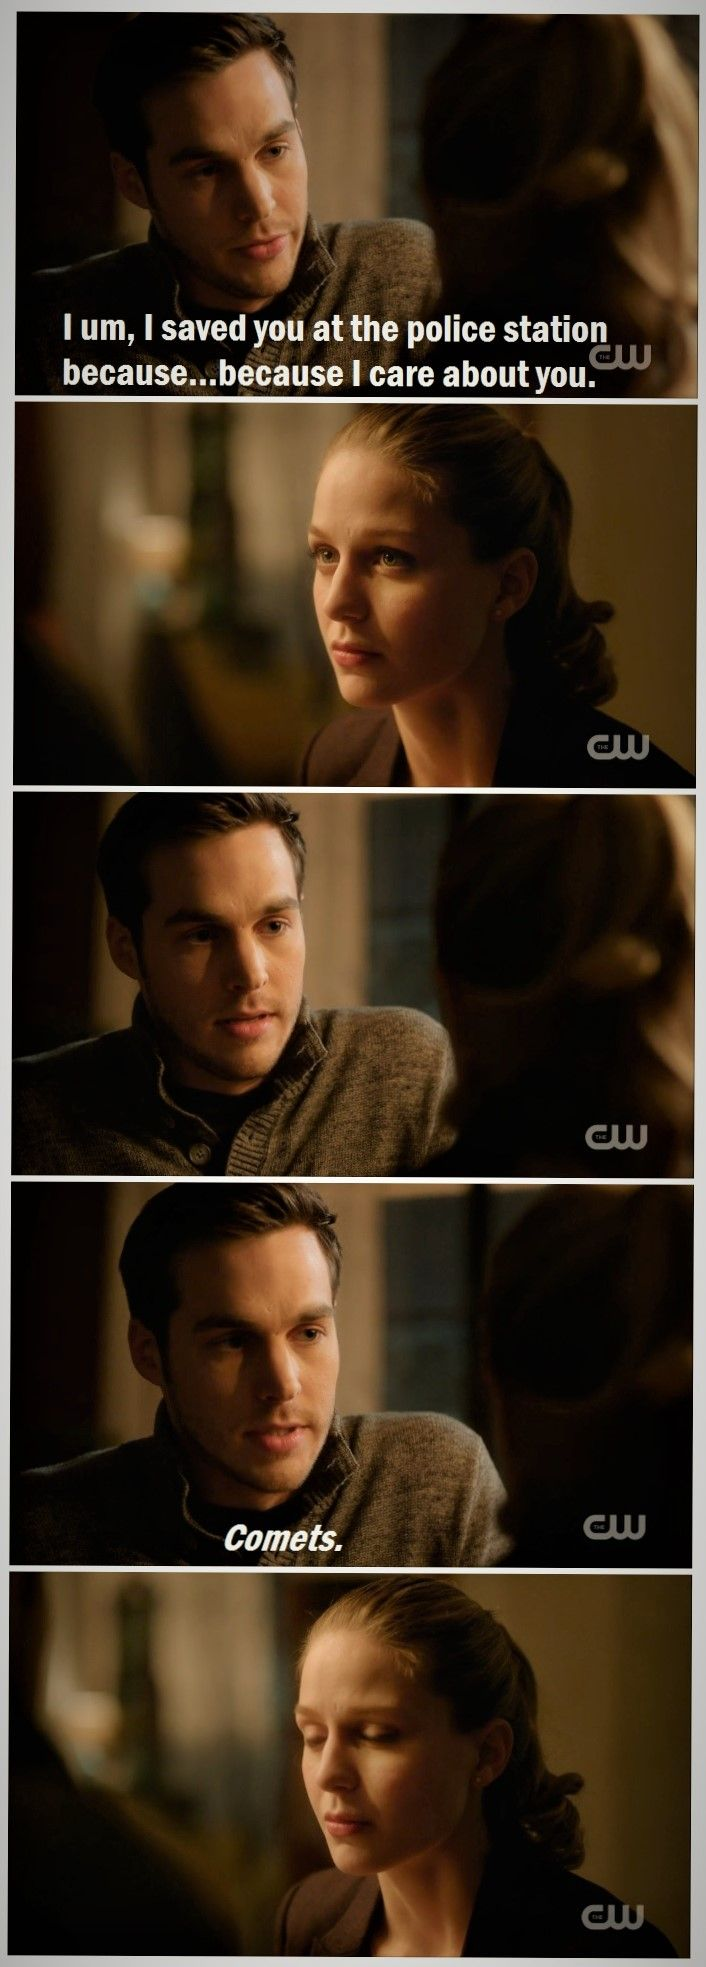 """Kara and Mon-El are adorable. My rational side hates me for getting giddy over cheesy eyes-as-comets comparisons, but...the thing is, Mon-El KNOWS it sounds cheesy, which is why he's so sheepish. And that makes it cool in my book. Plus, you know--his hit-by-a-truck look when Kara stares at him and tries to process everything is pretty darn cute. 